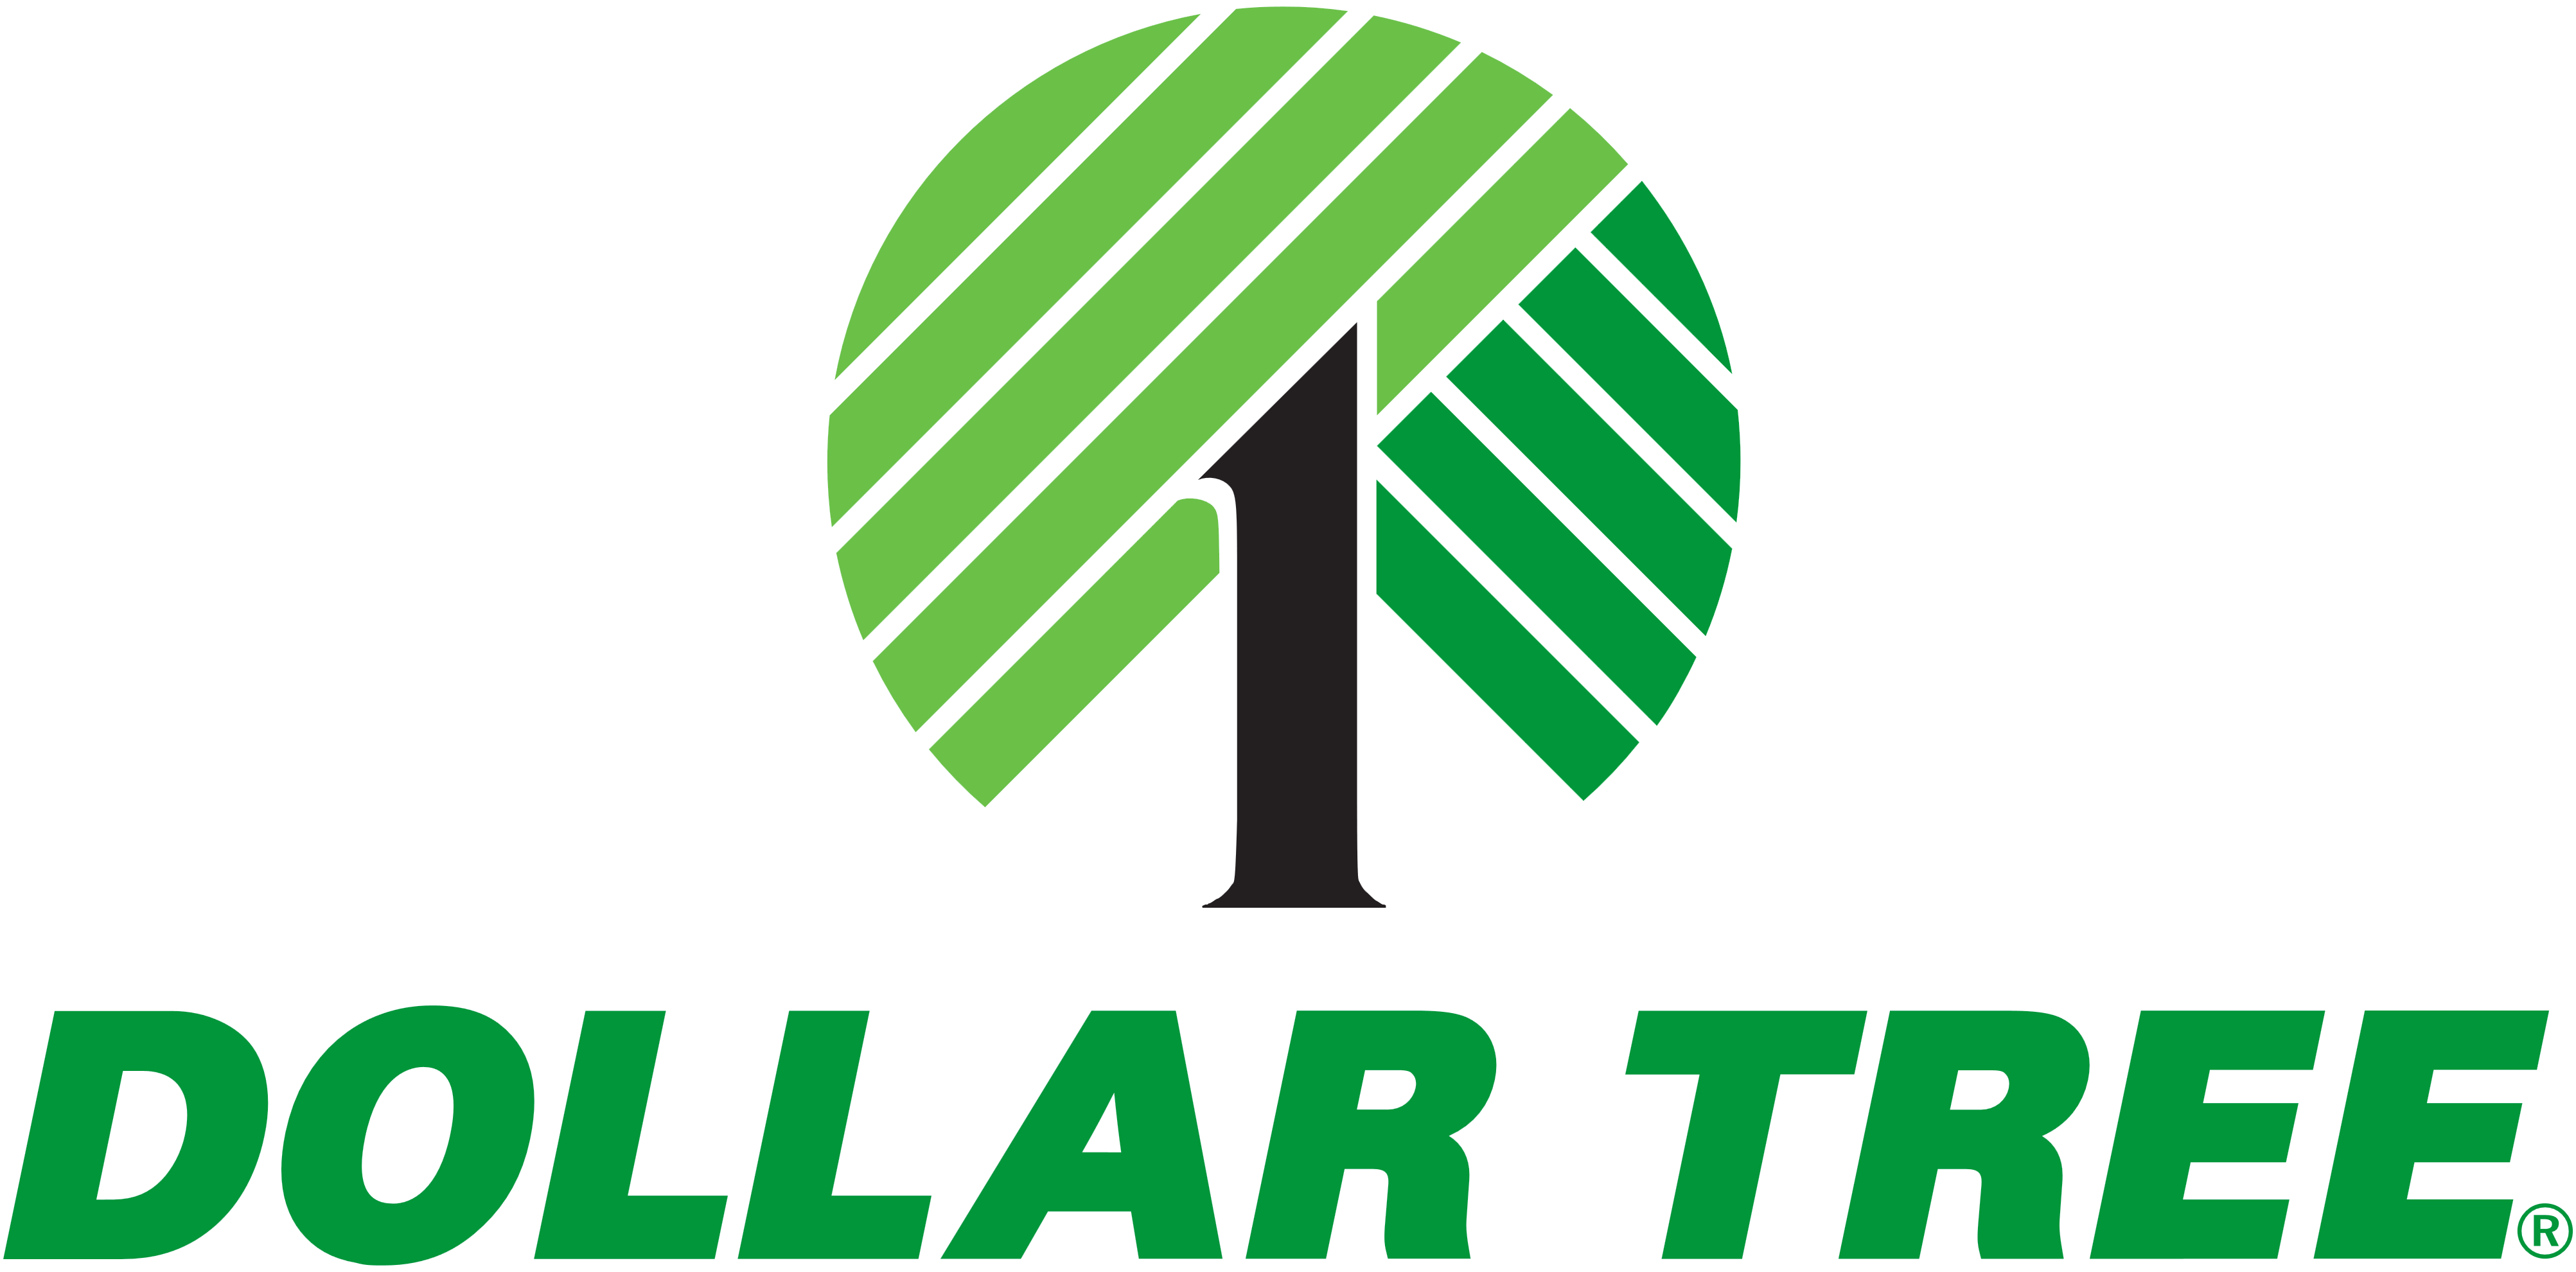 Dollar_Tree_logo_symbol (1)